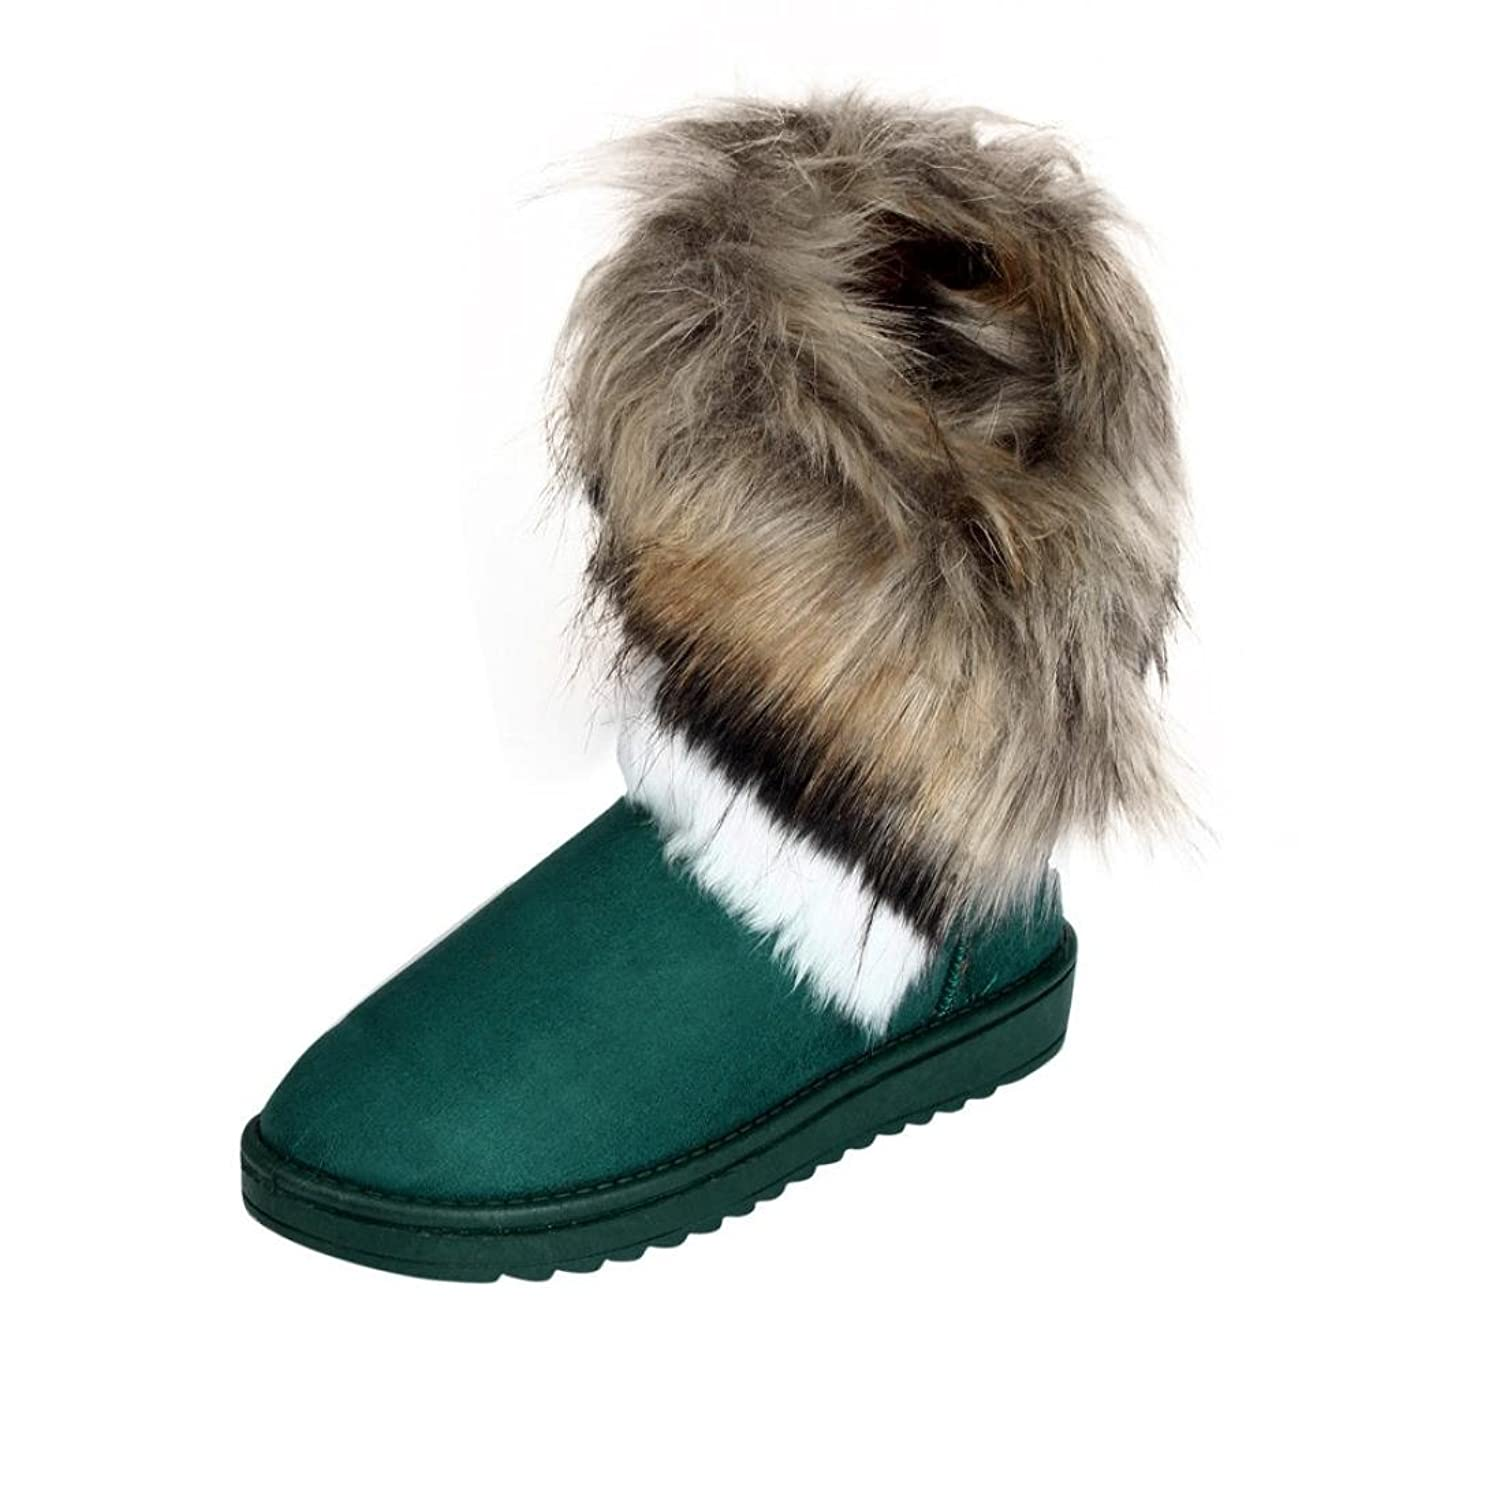 Women's Winter Boots, Mchoice Fashion Women Boots Flat Ankle Fur Lined Winter Warm Snow Shoes